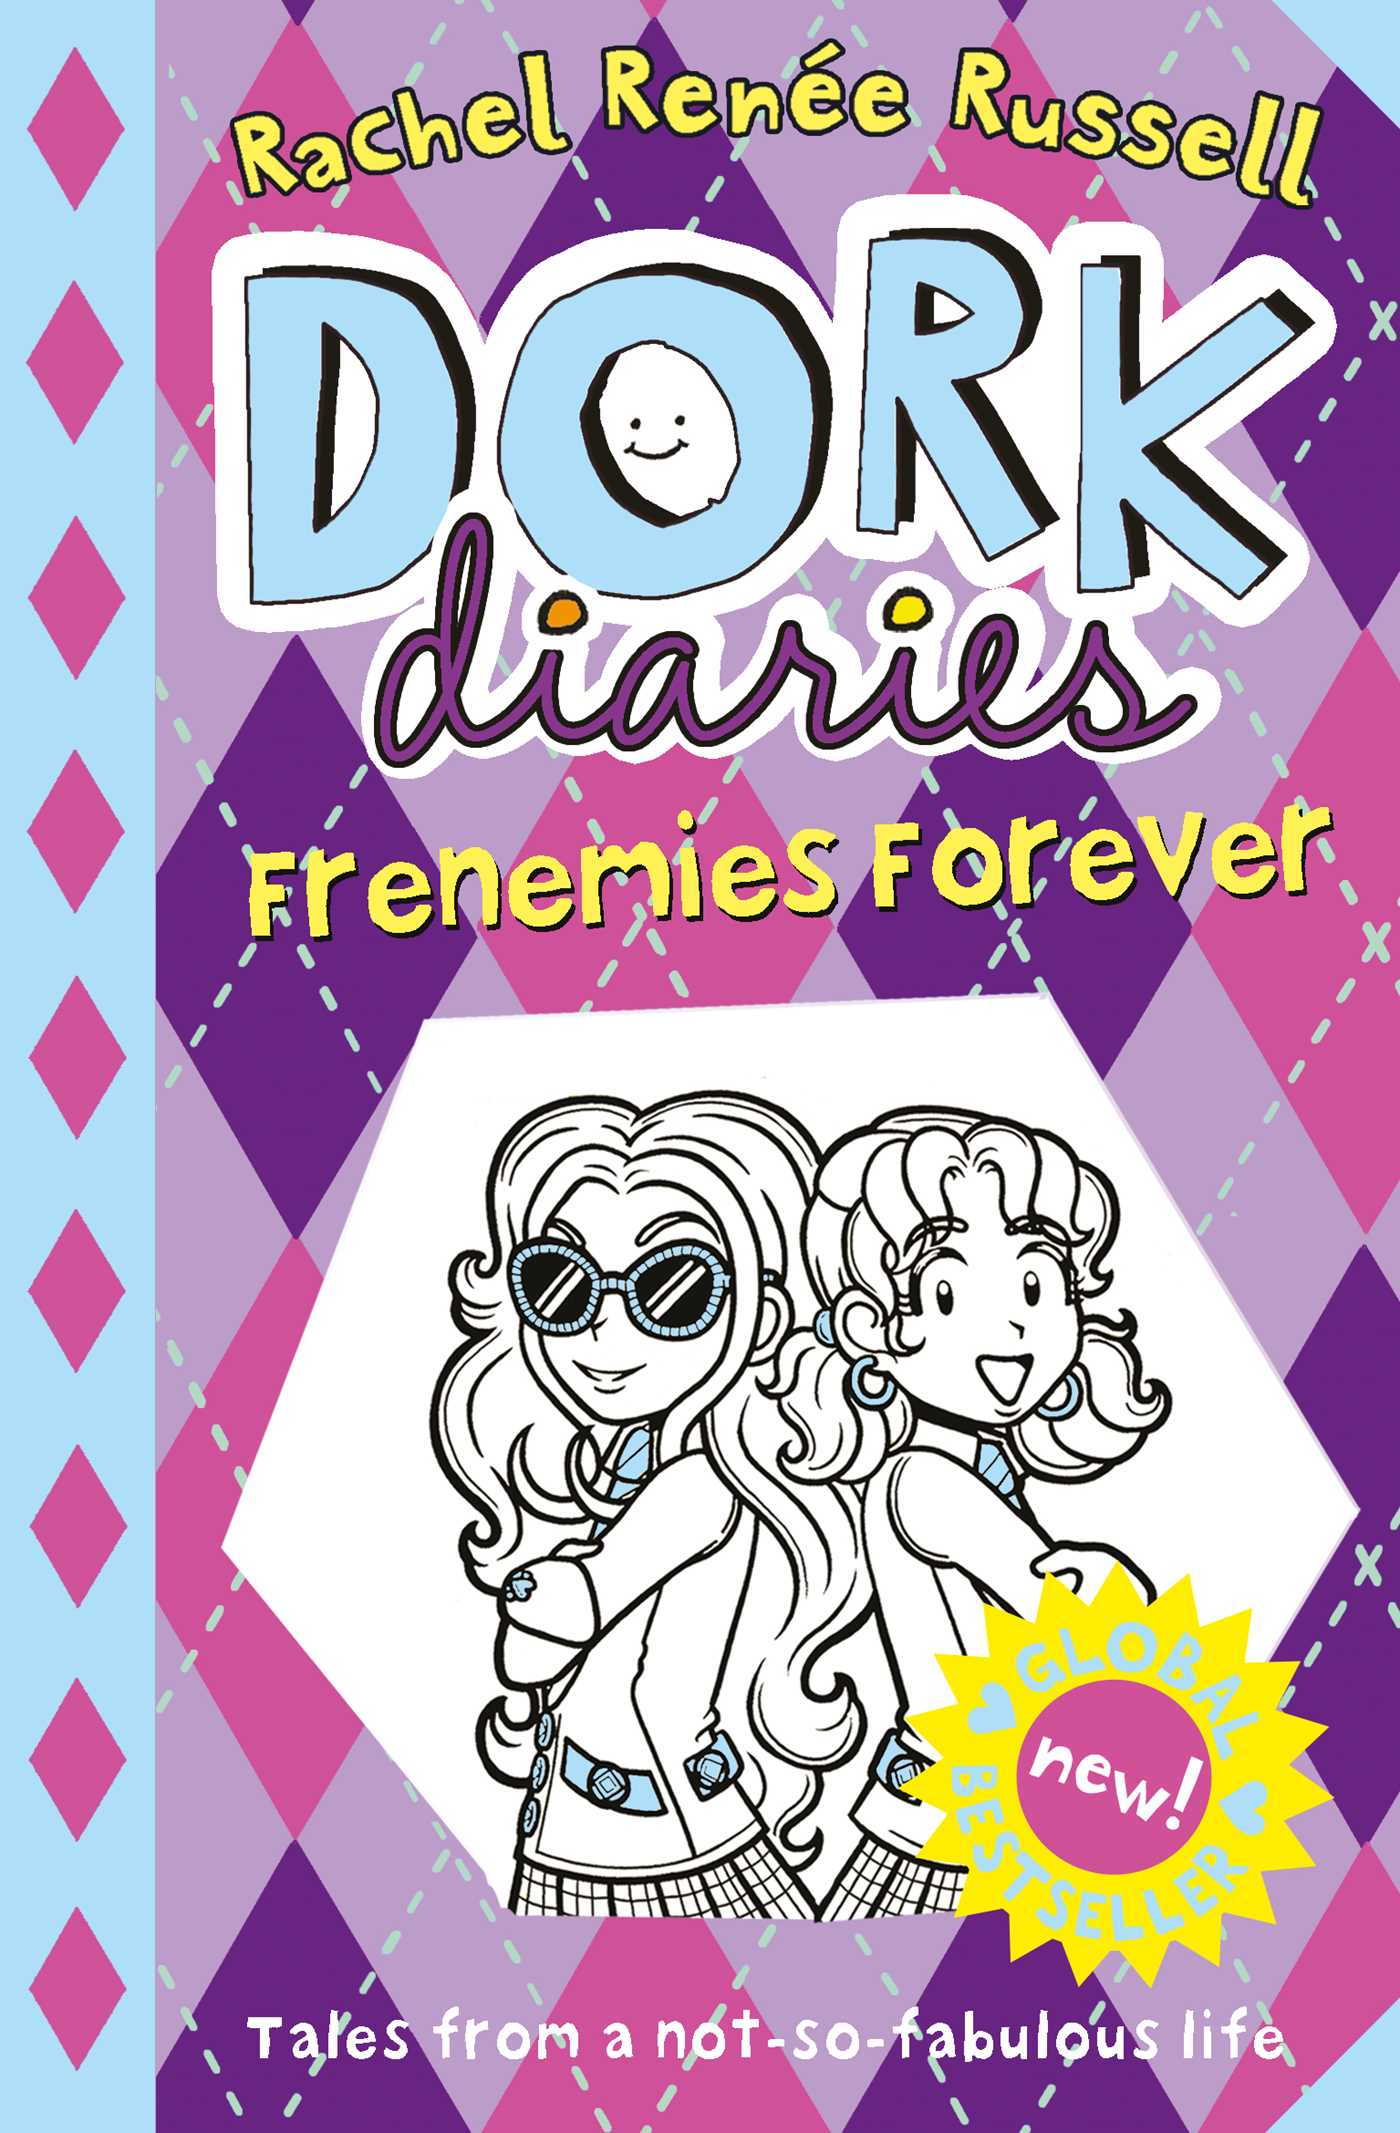 Dork diaries frenemies forever book by rachel renee russell book cover image jpg dork diaries frenemies forever solutioingenieria Choice Image